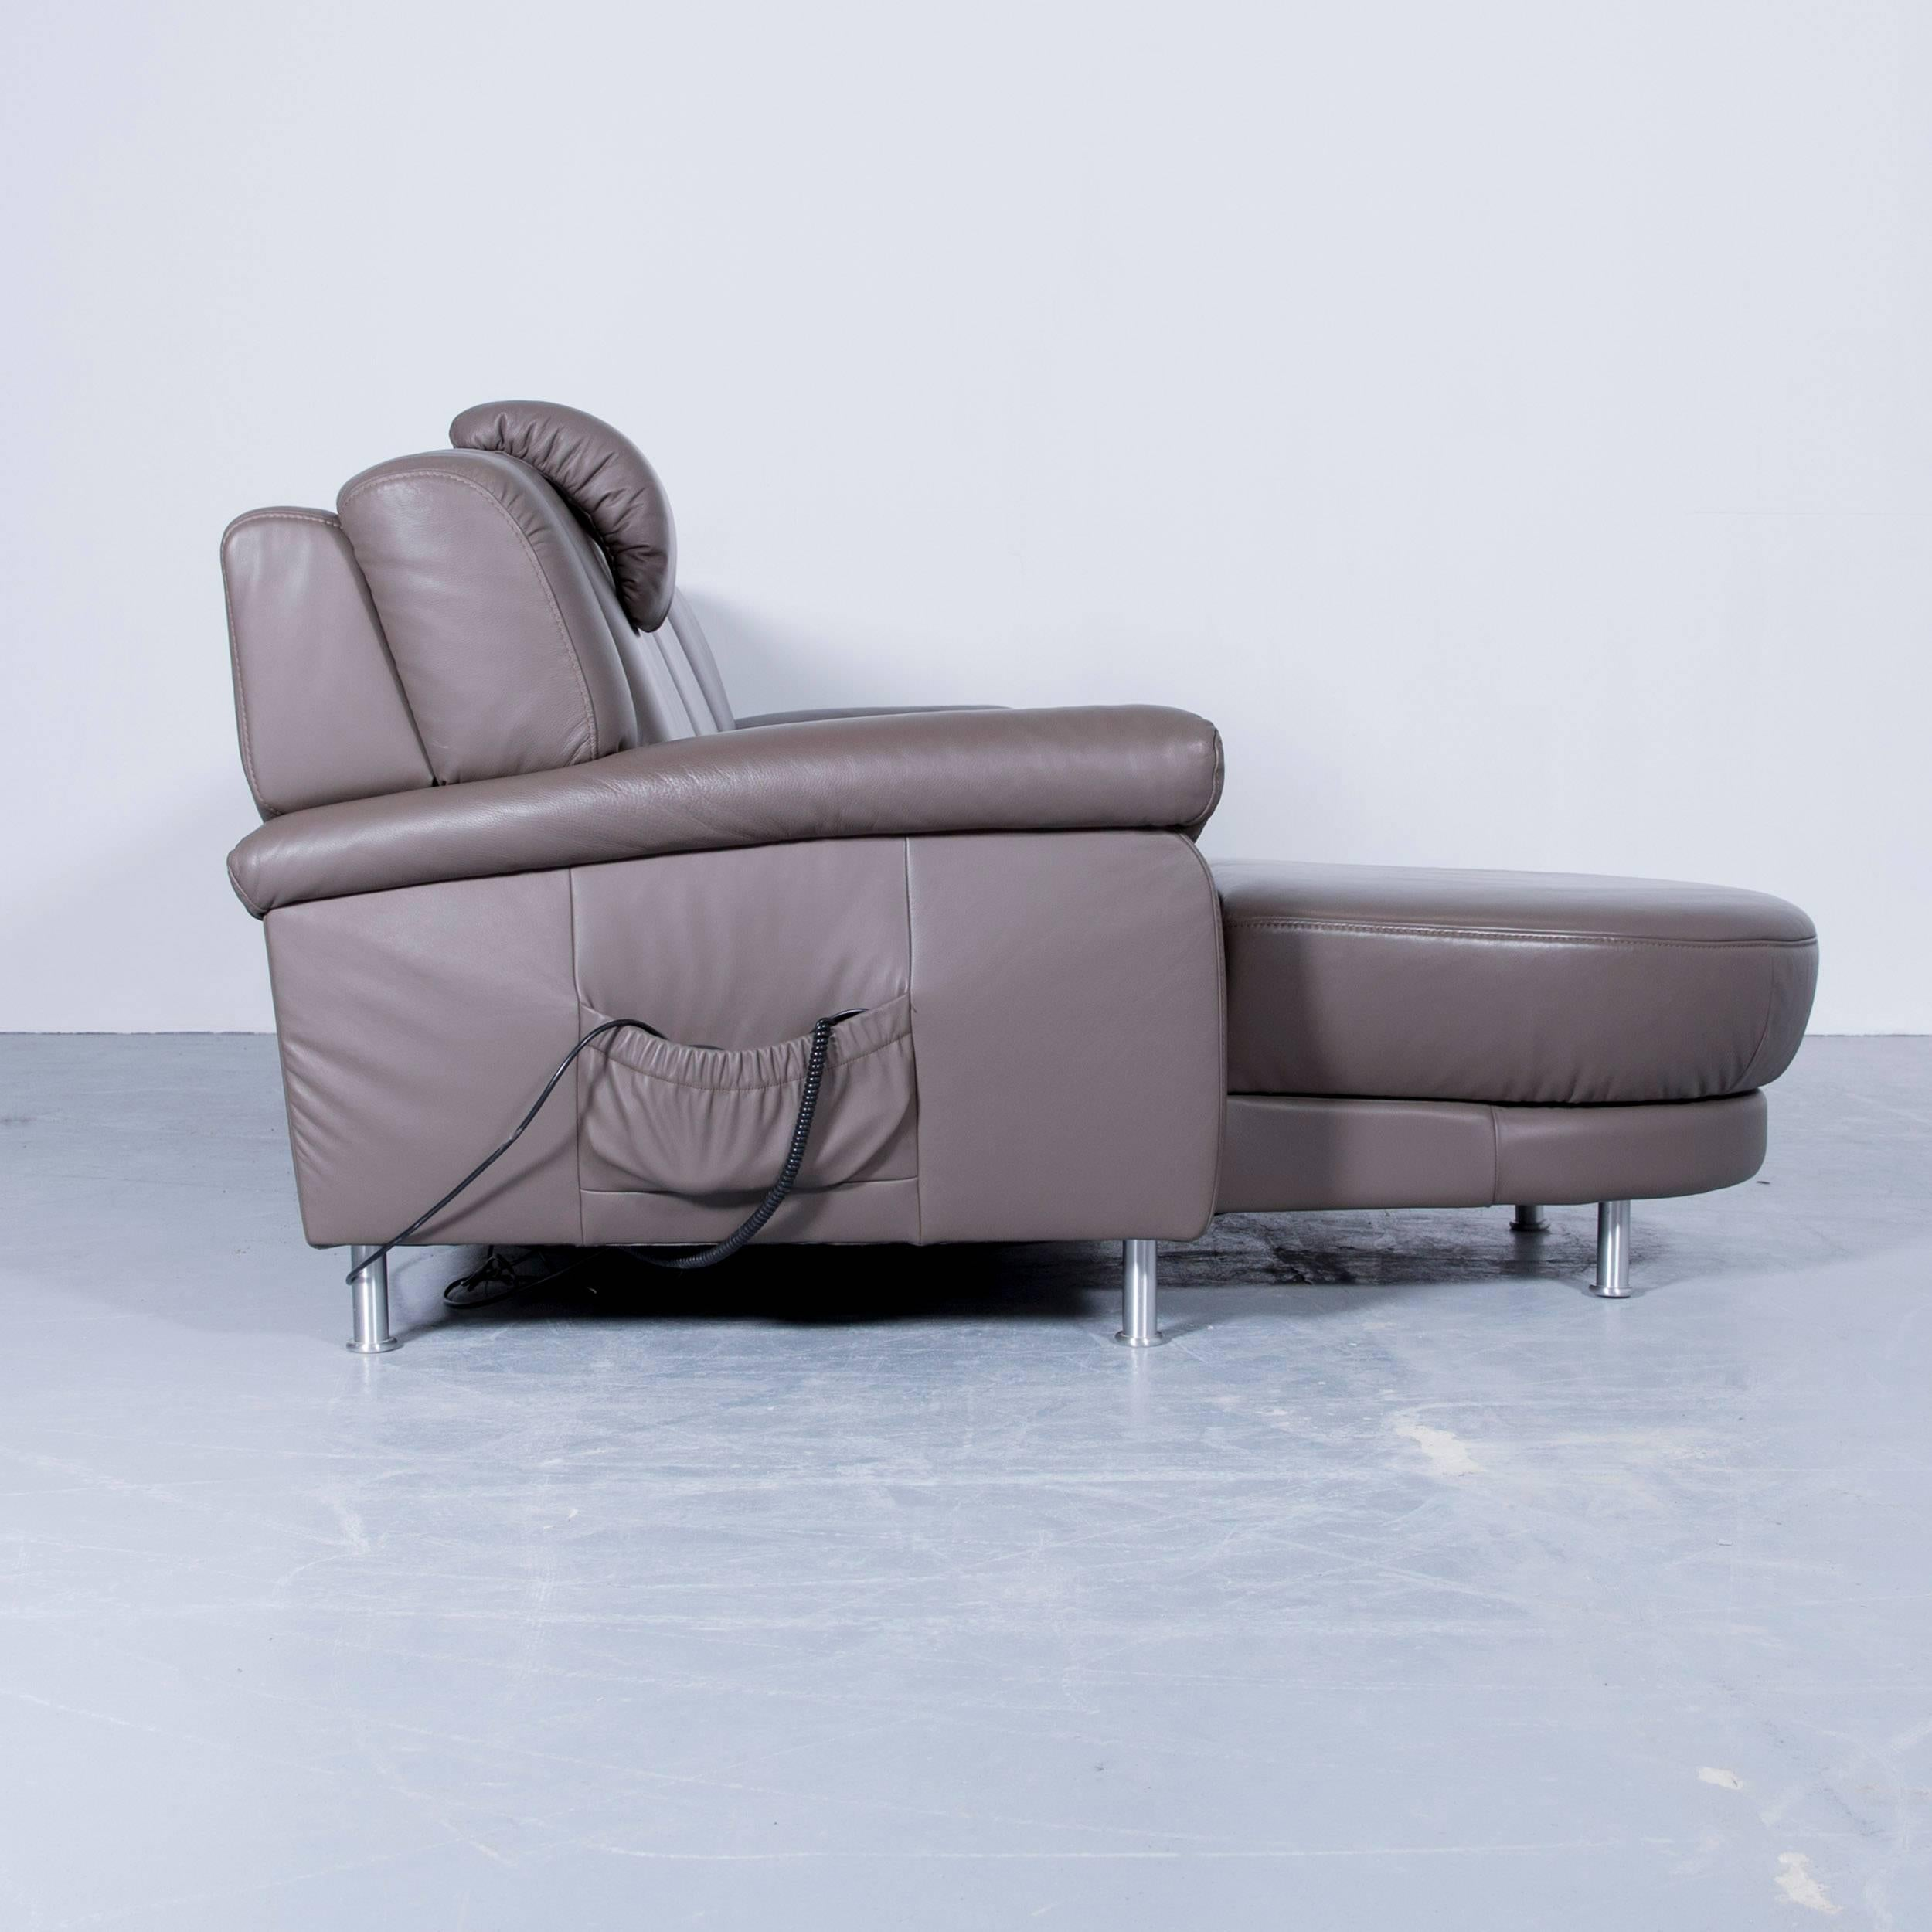 Himolla Sessel Gebraucht Himolla Planopoly Corner Sofa Leather Brown Electric Recline Function Couch